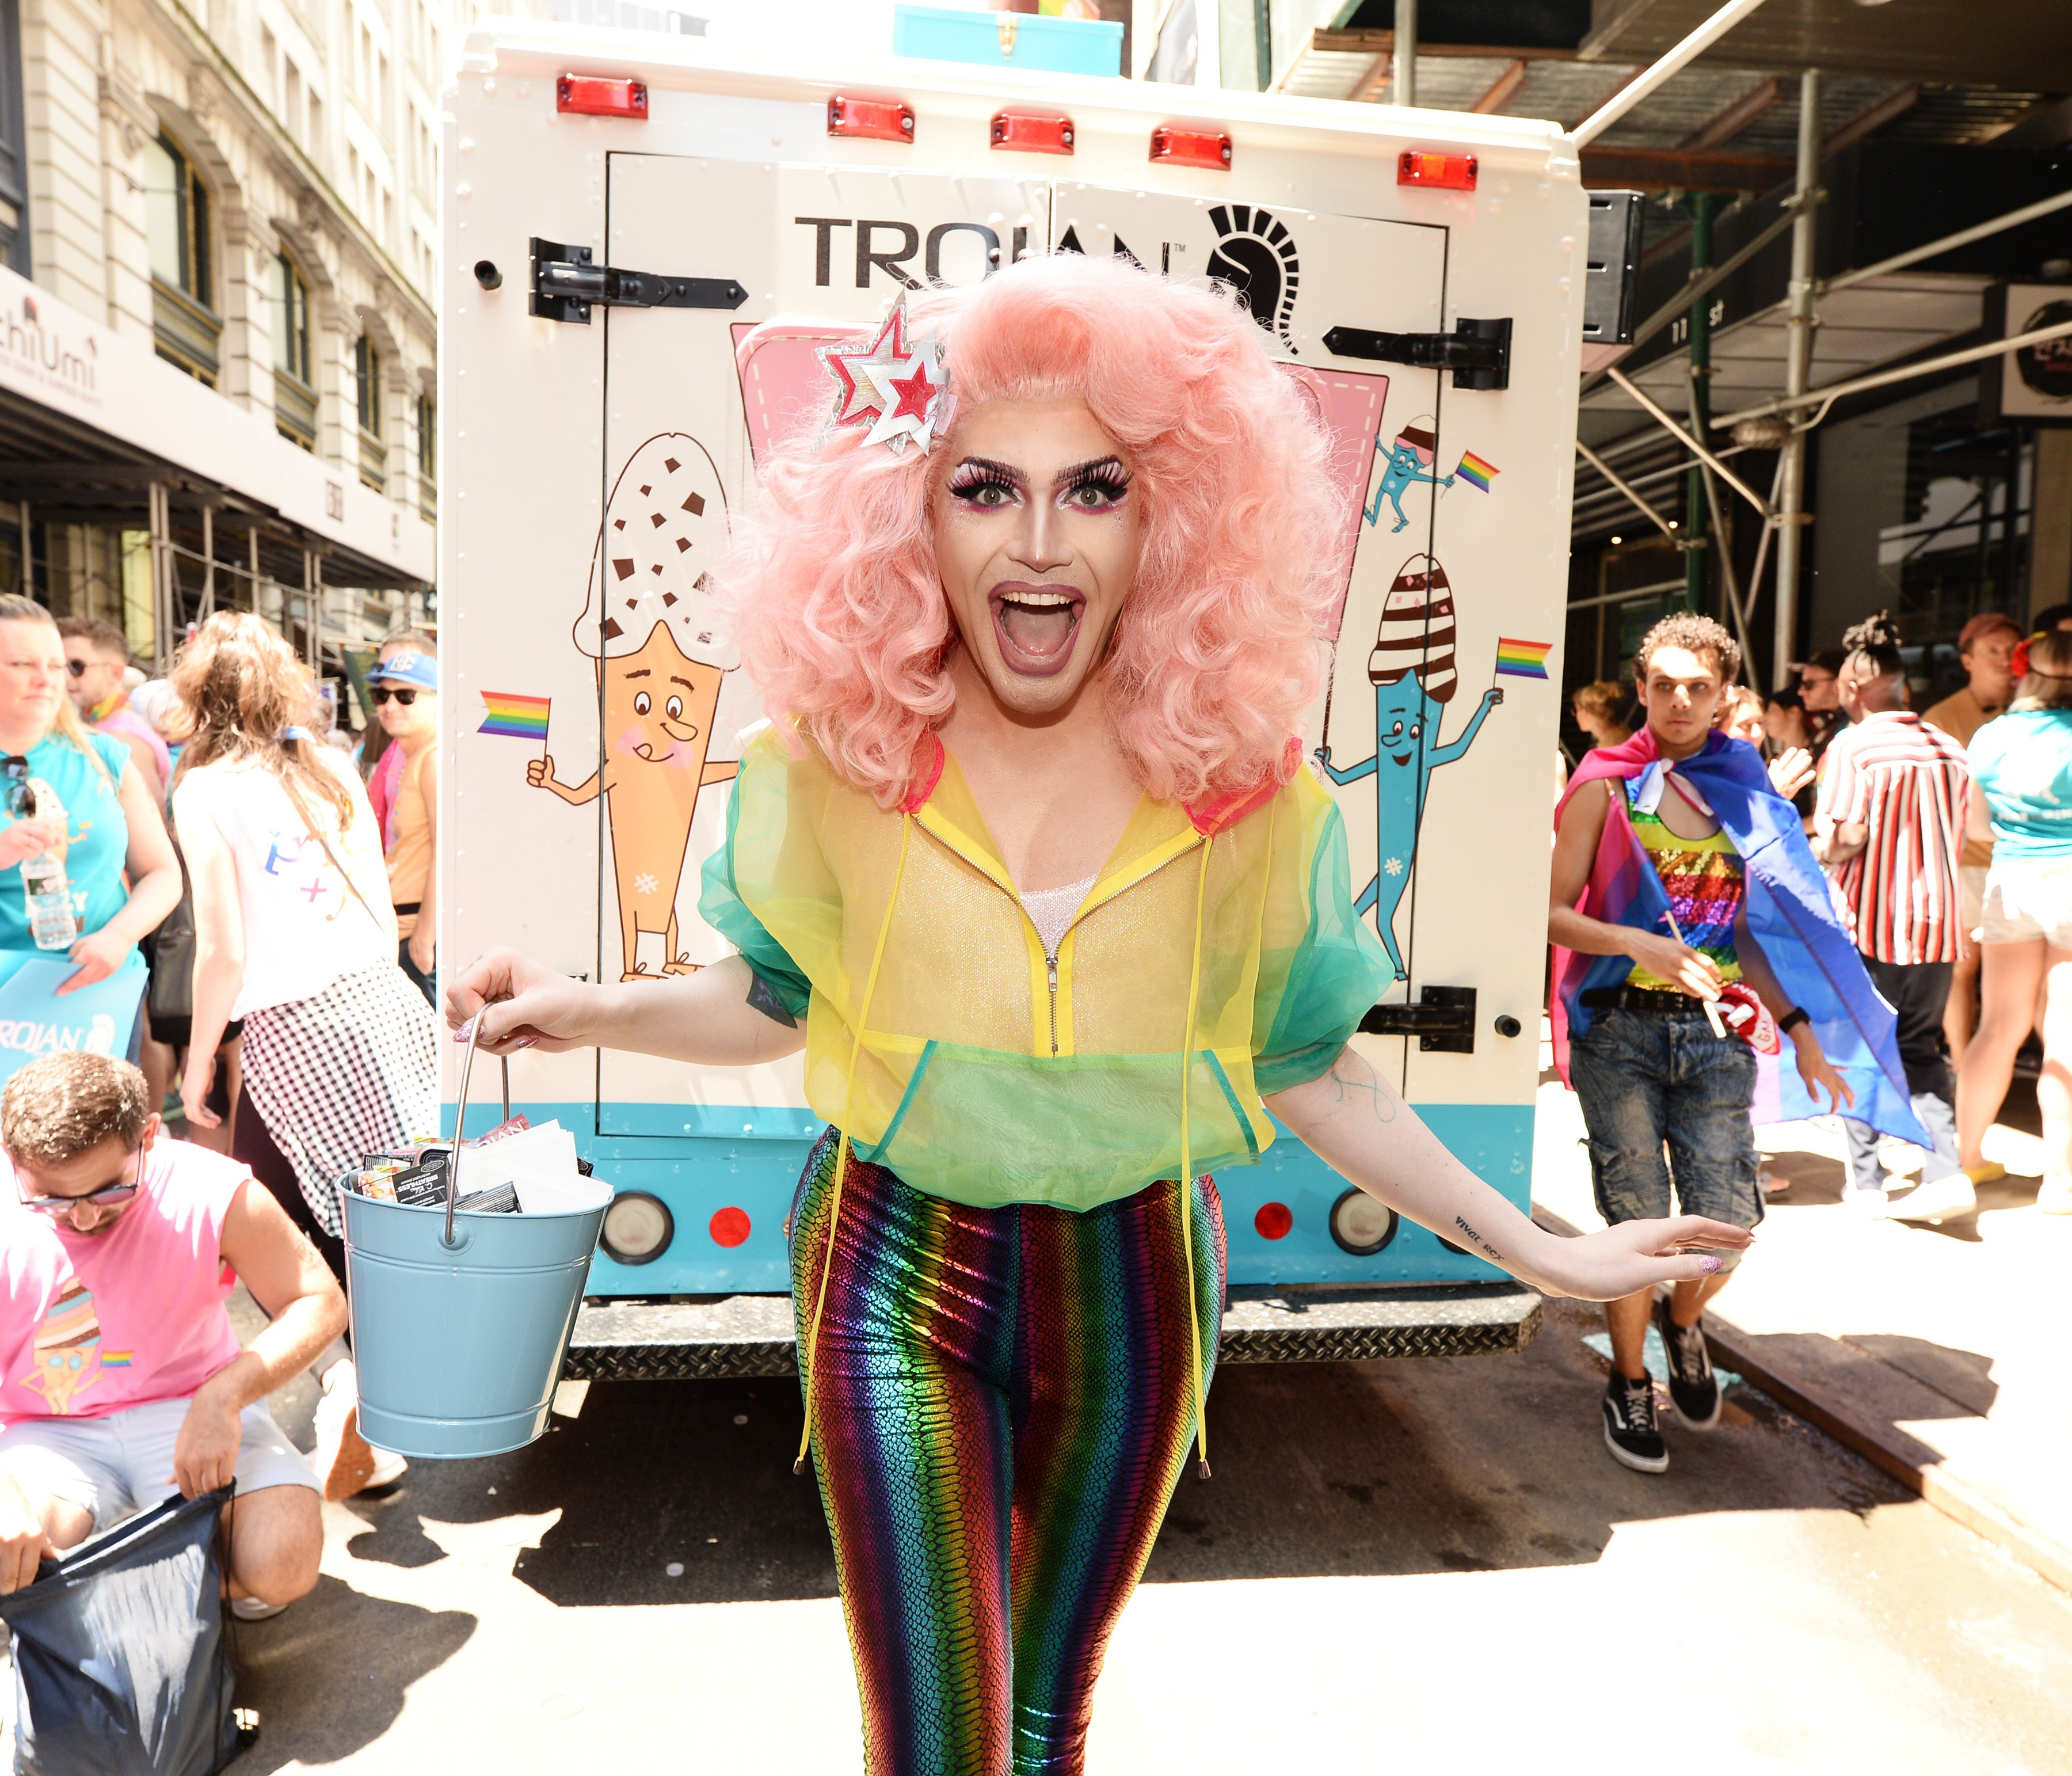 NYC drag queen Rosé partnered with Trojan Condoms to promote the Conecocktions Ice Cream Truck at the NYC WorldPride March on June 30, 2019, in New York City. (Photo by Noam Galai/Getty Images for Trojan)